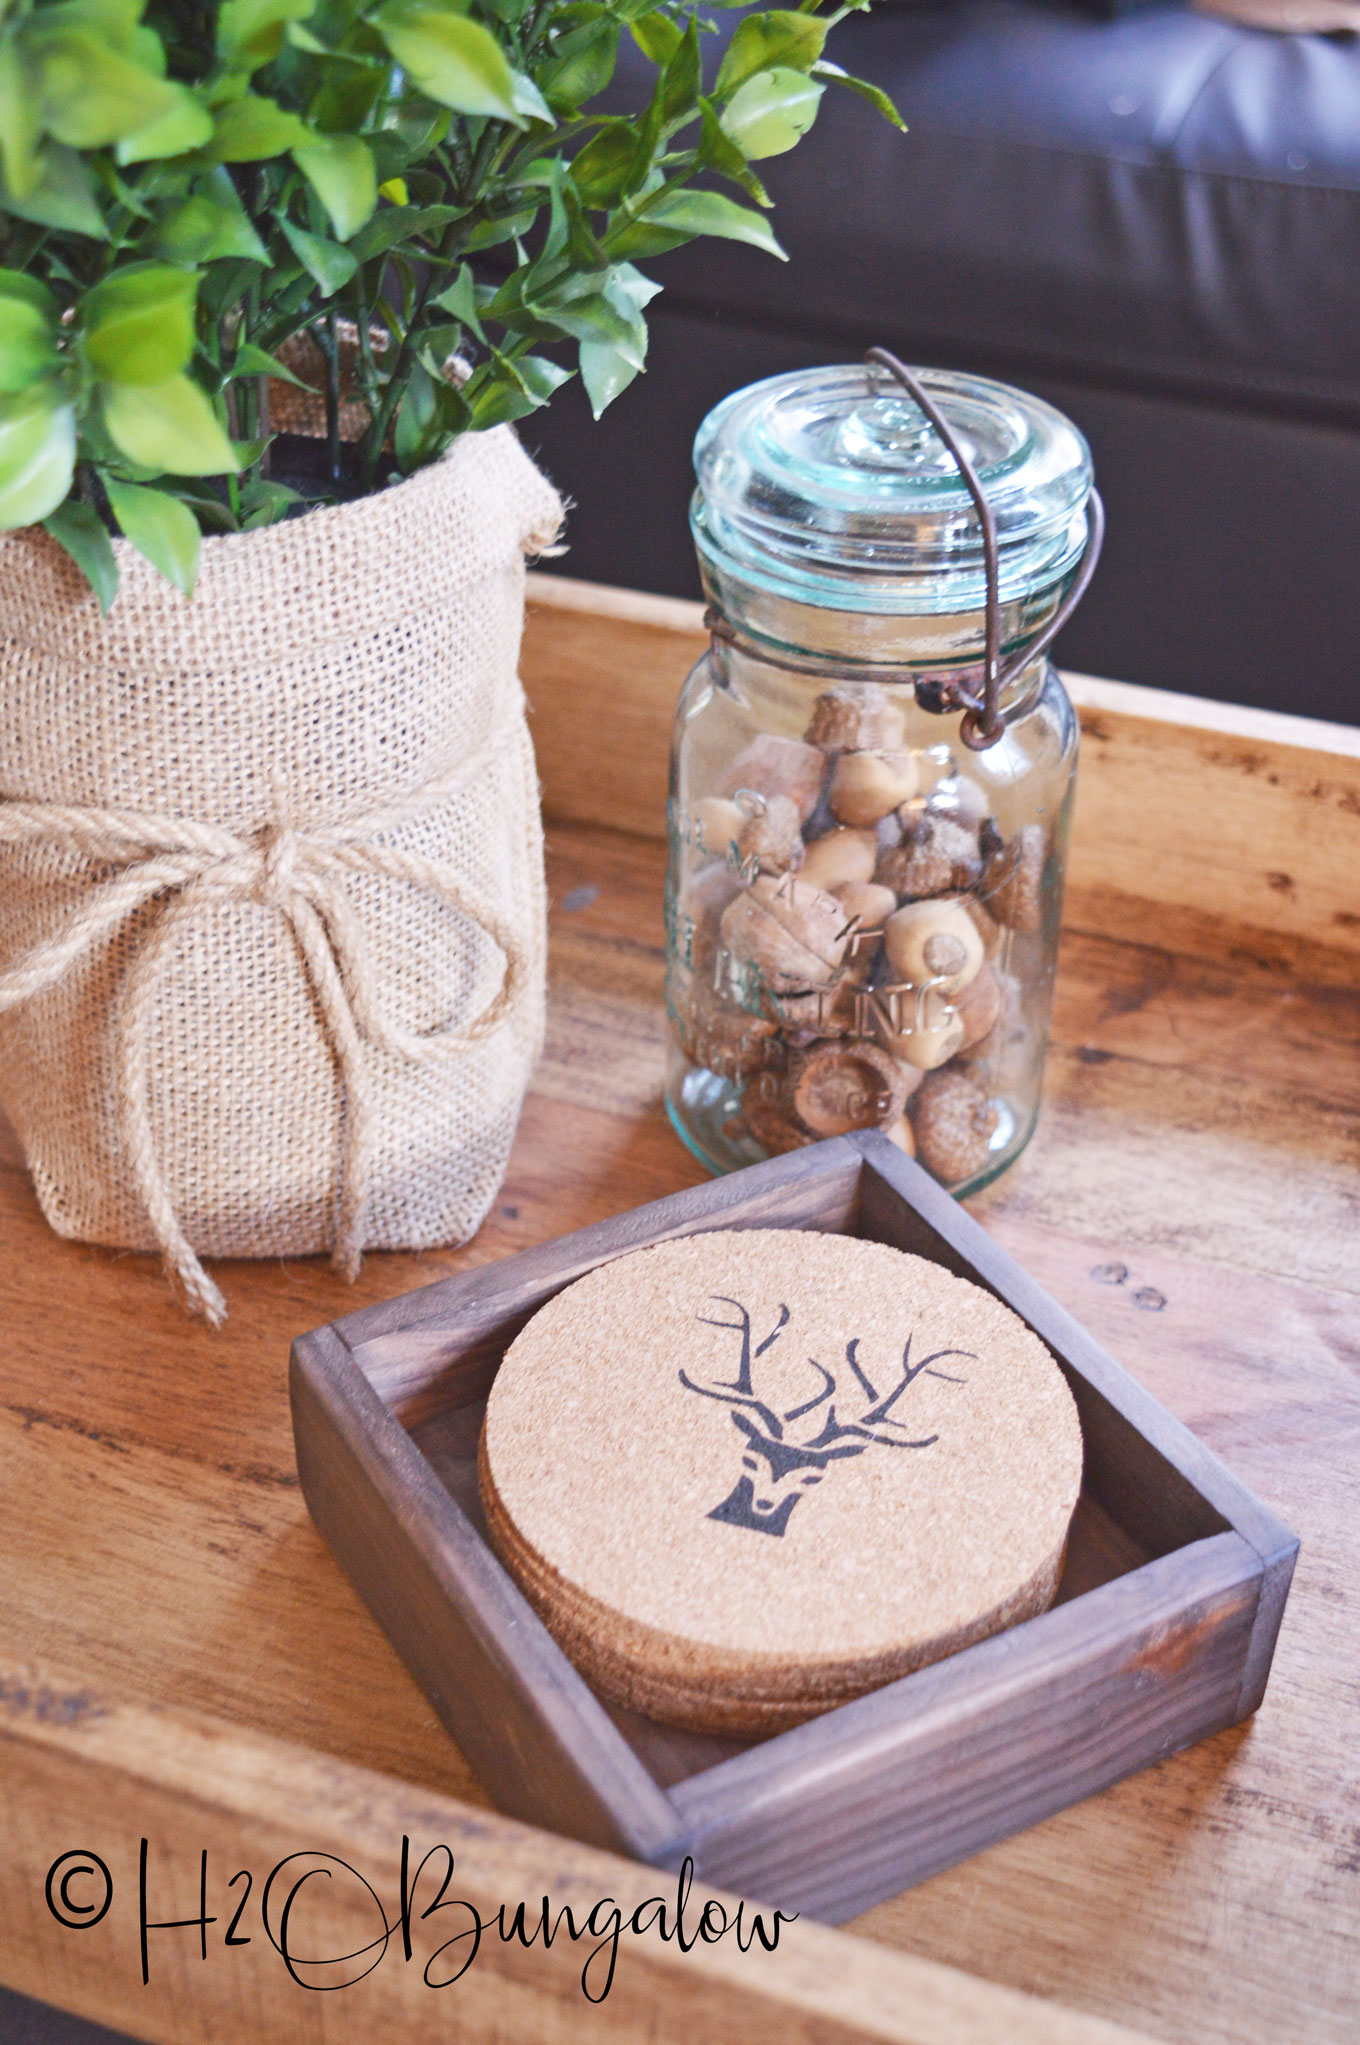 Deer antler DIY drink coasters in wood box with plant and mason jar on coffee table